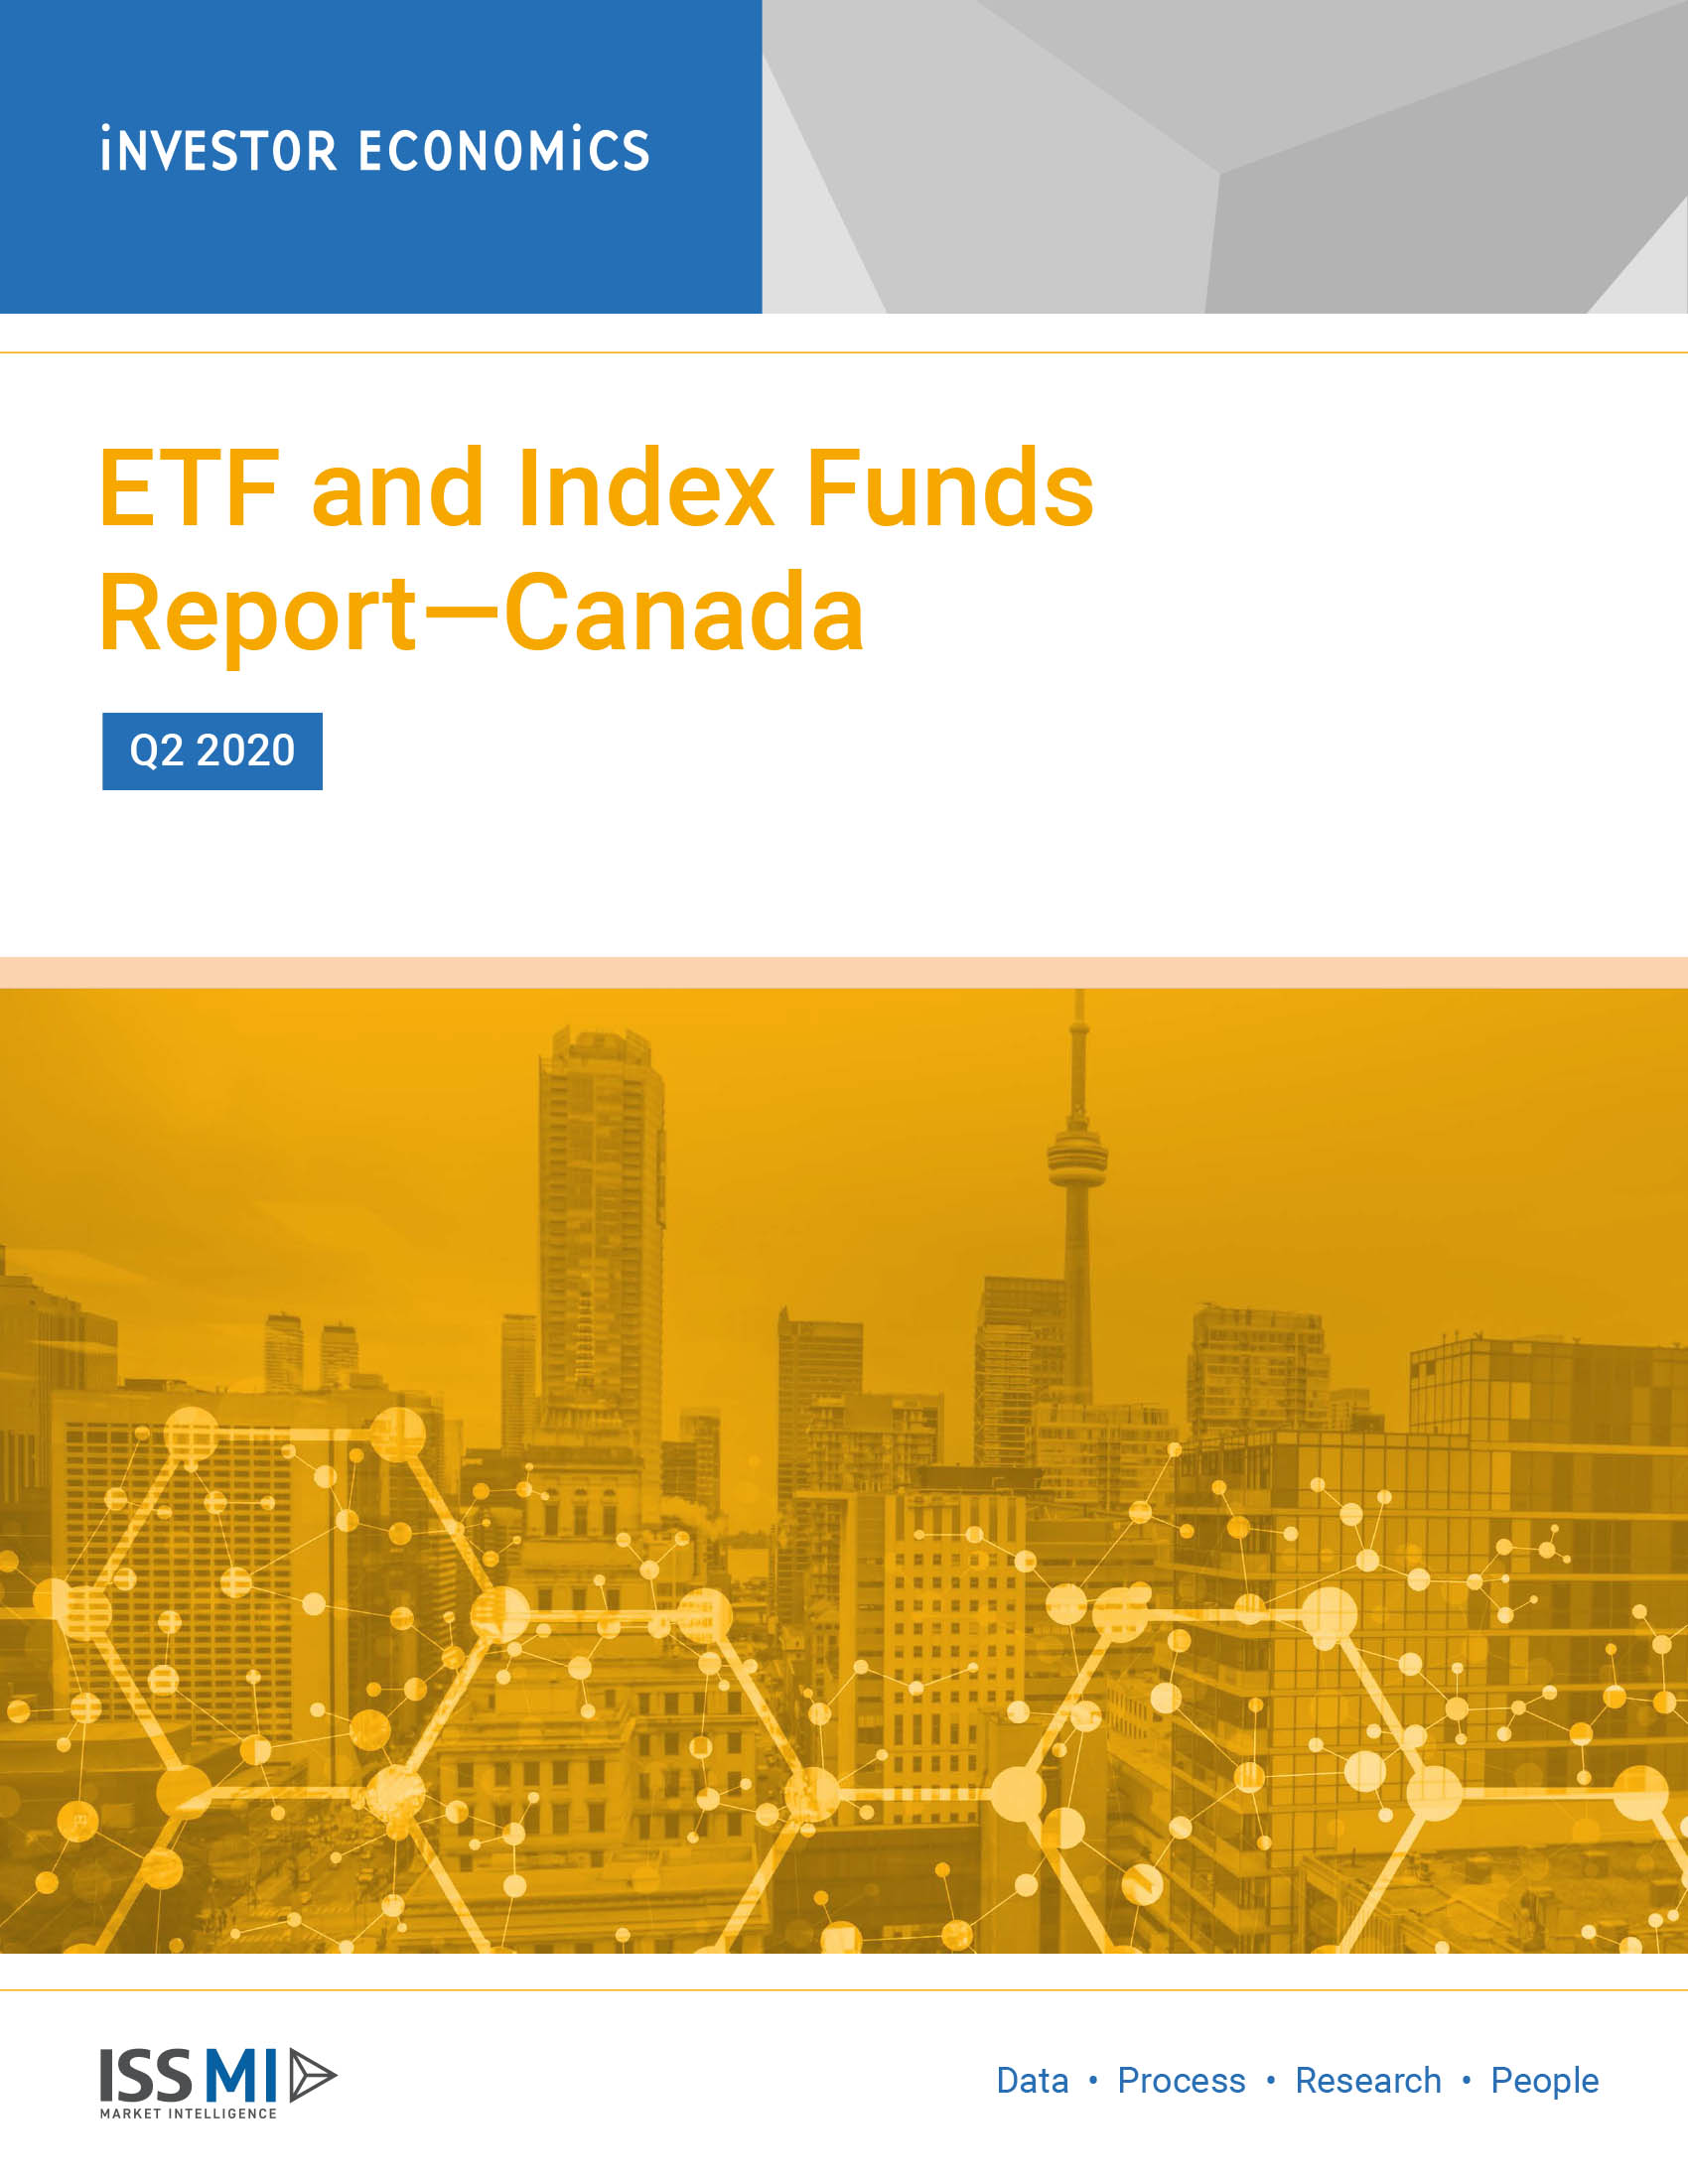 ETF and Index Funds Report Q2 2020